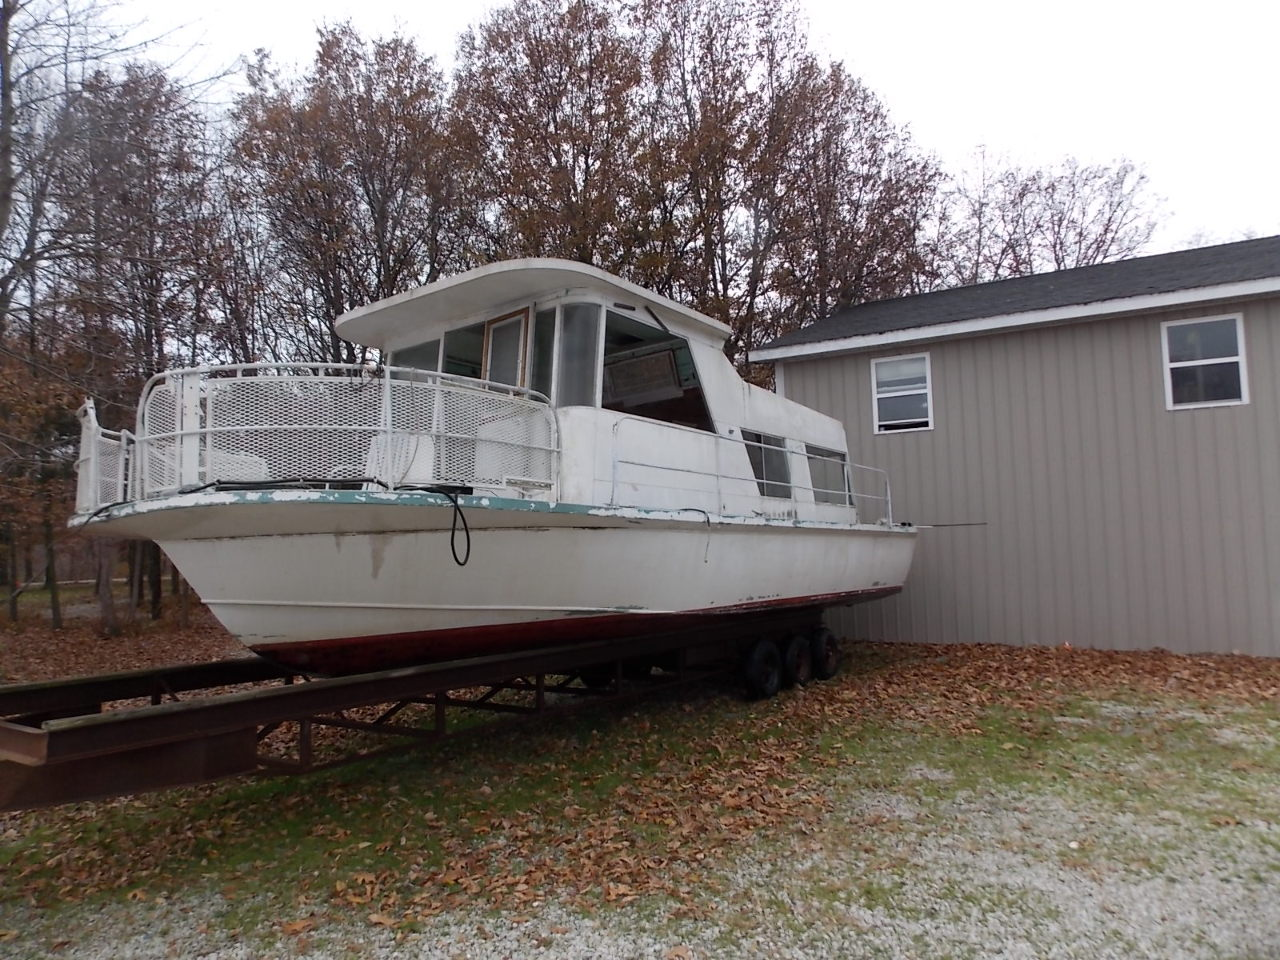 Ebay house boats 28 images 1960s explorer houseboat for The motor company marinette